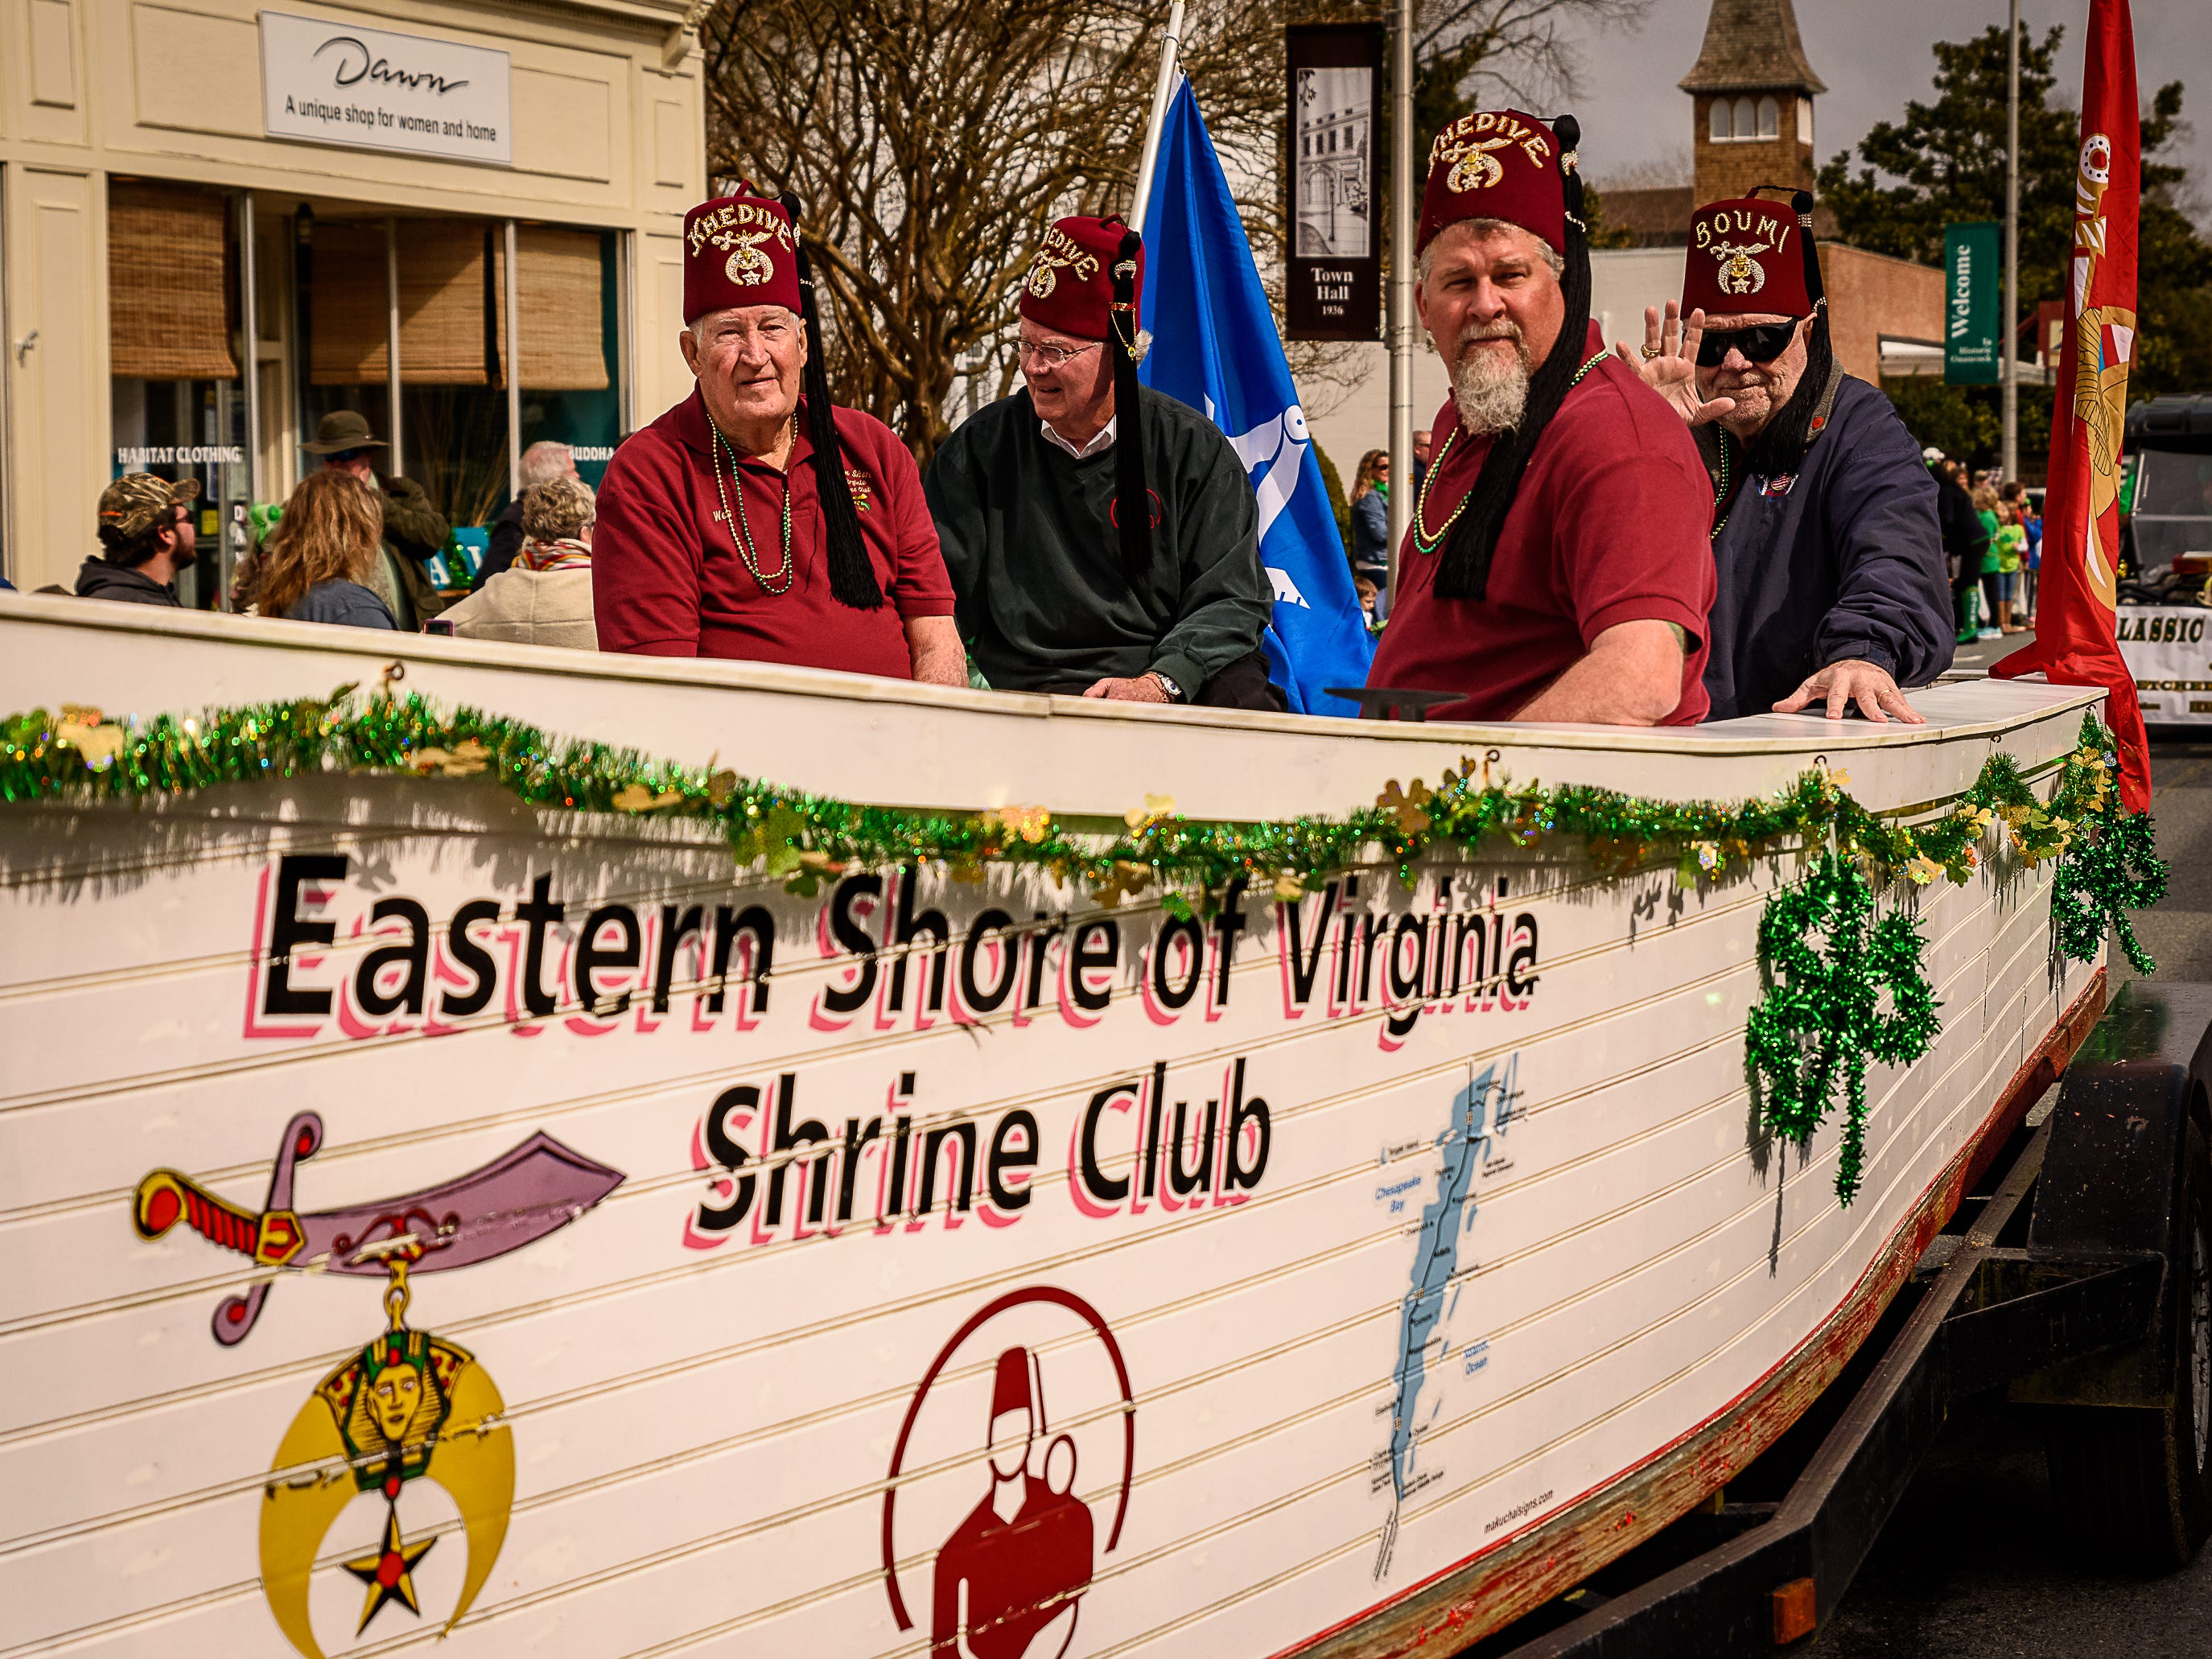 Members of The Eastern Shore Of Virginia Shrine Club took a boat along the parade route in Onancock.